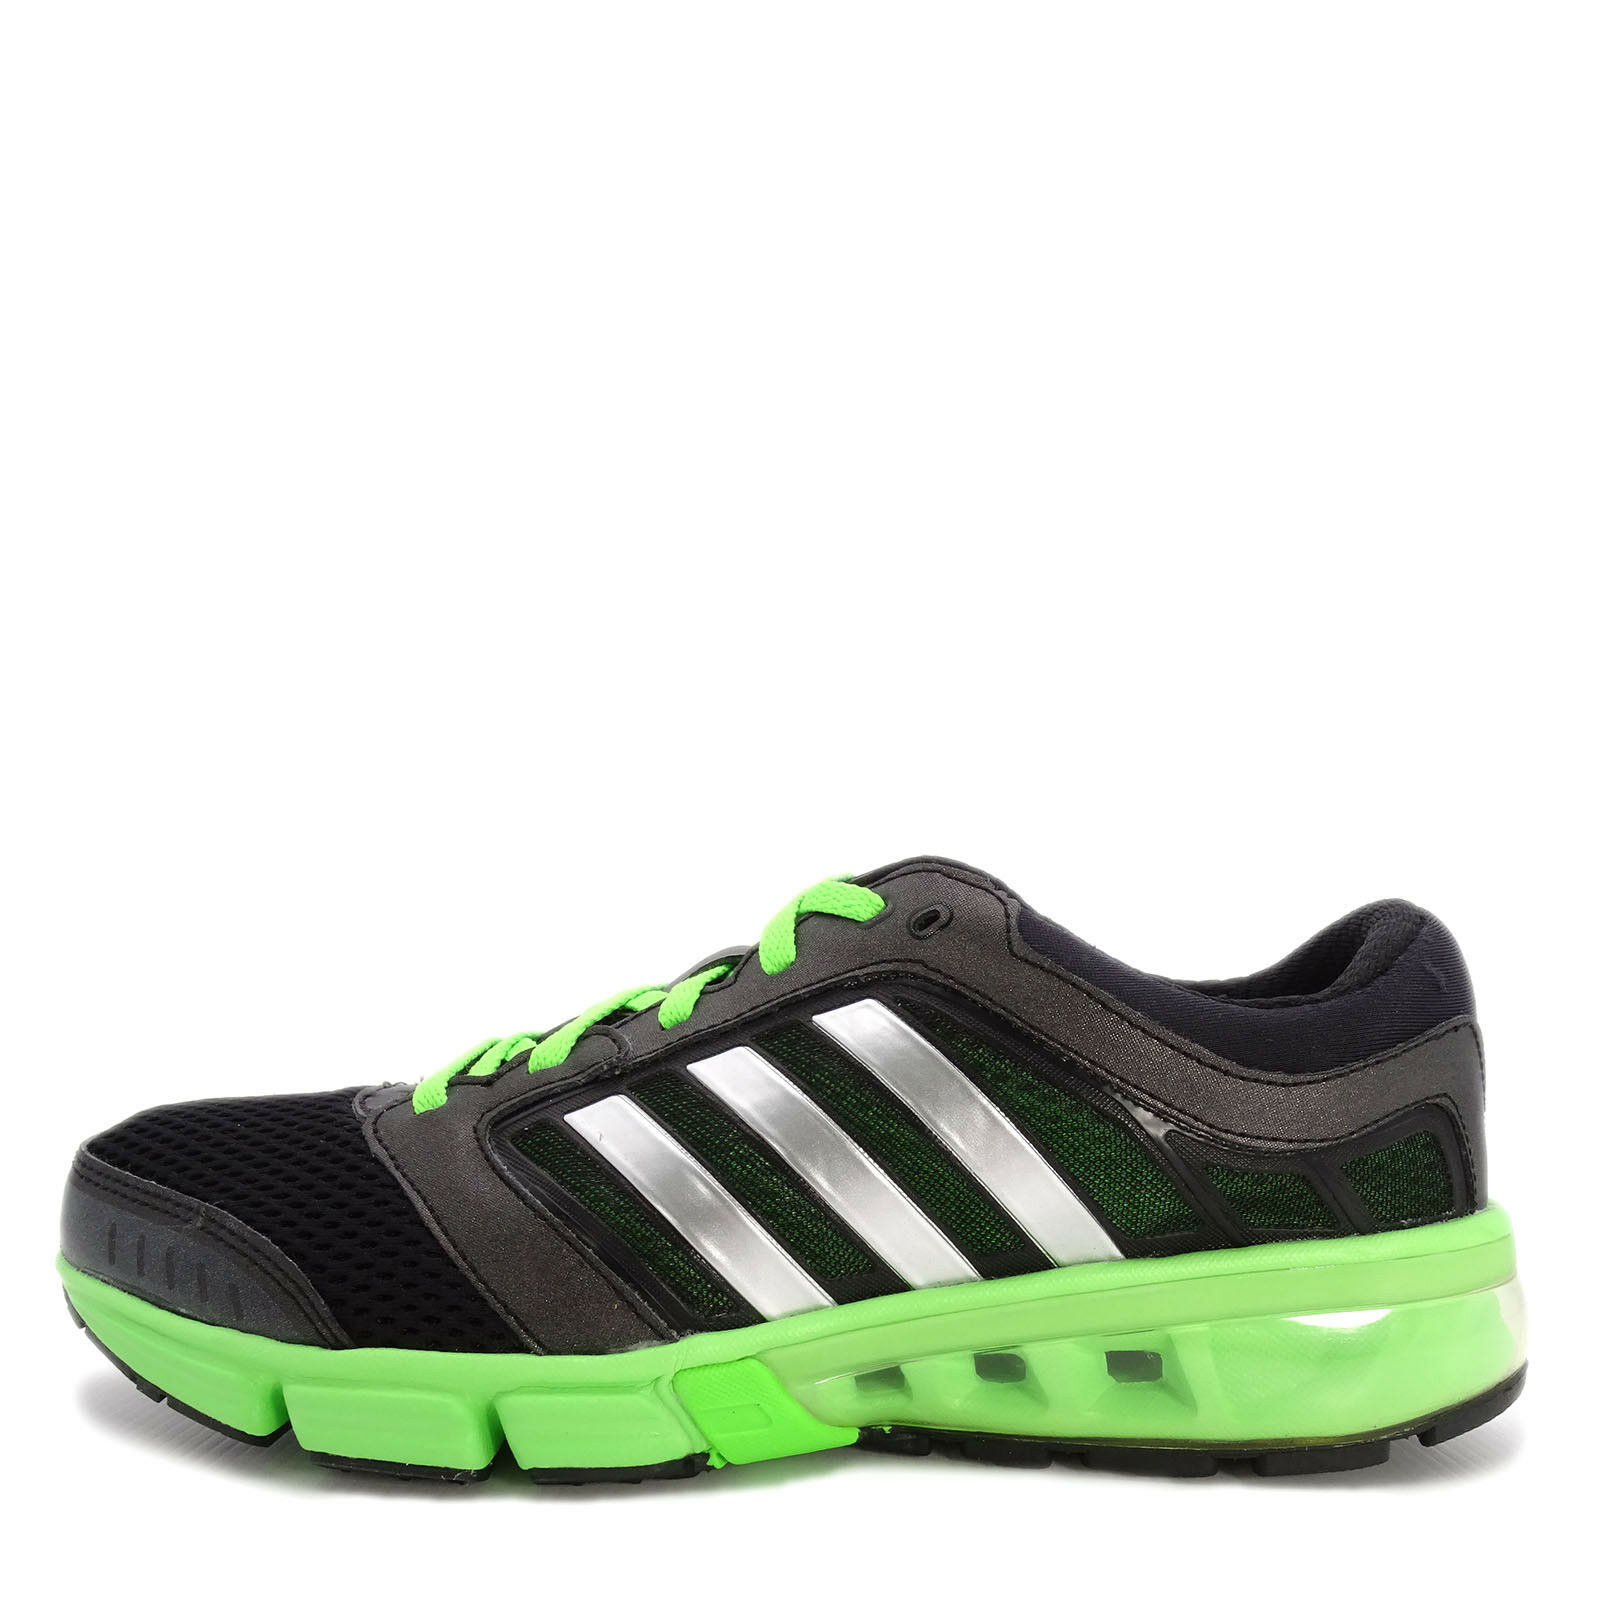 Adidas Cosmic Overrun M Price reduction Running Black/Green